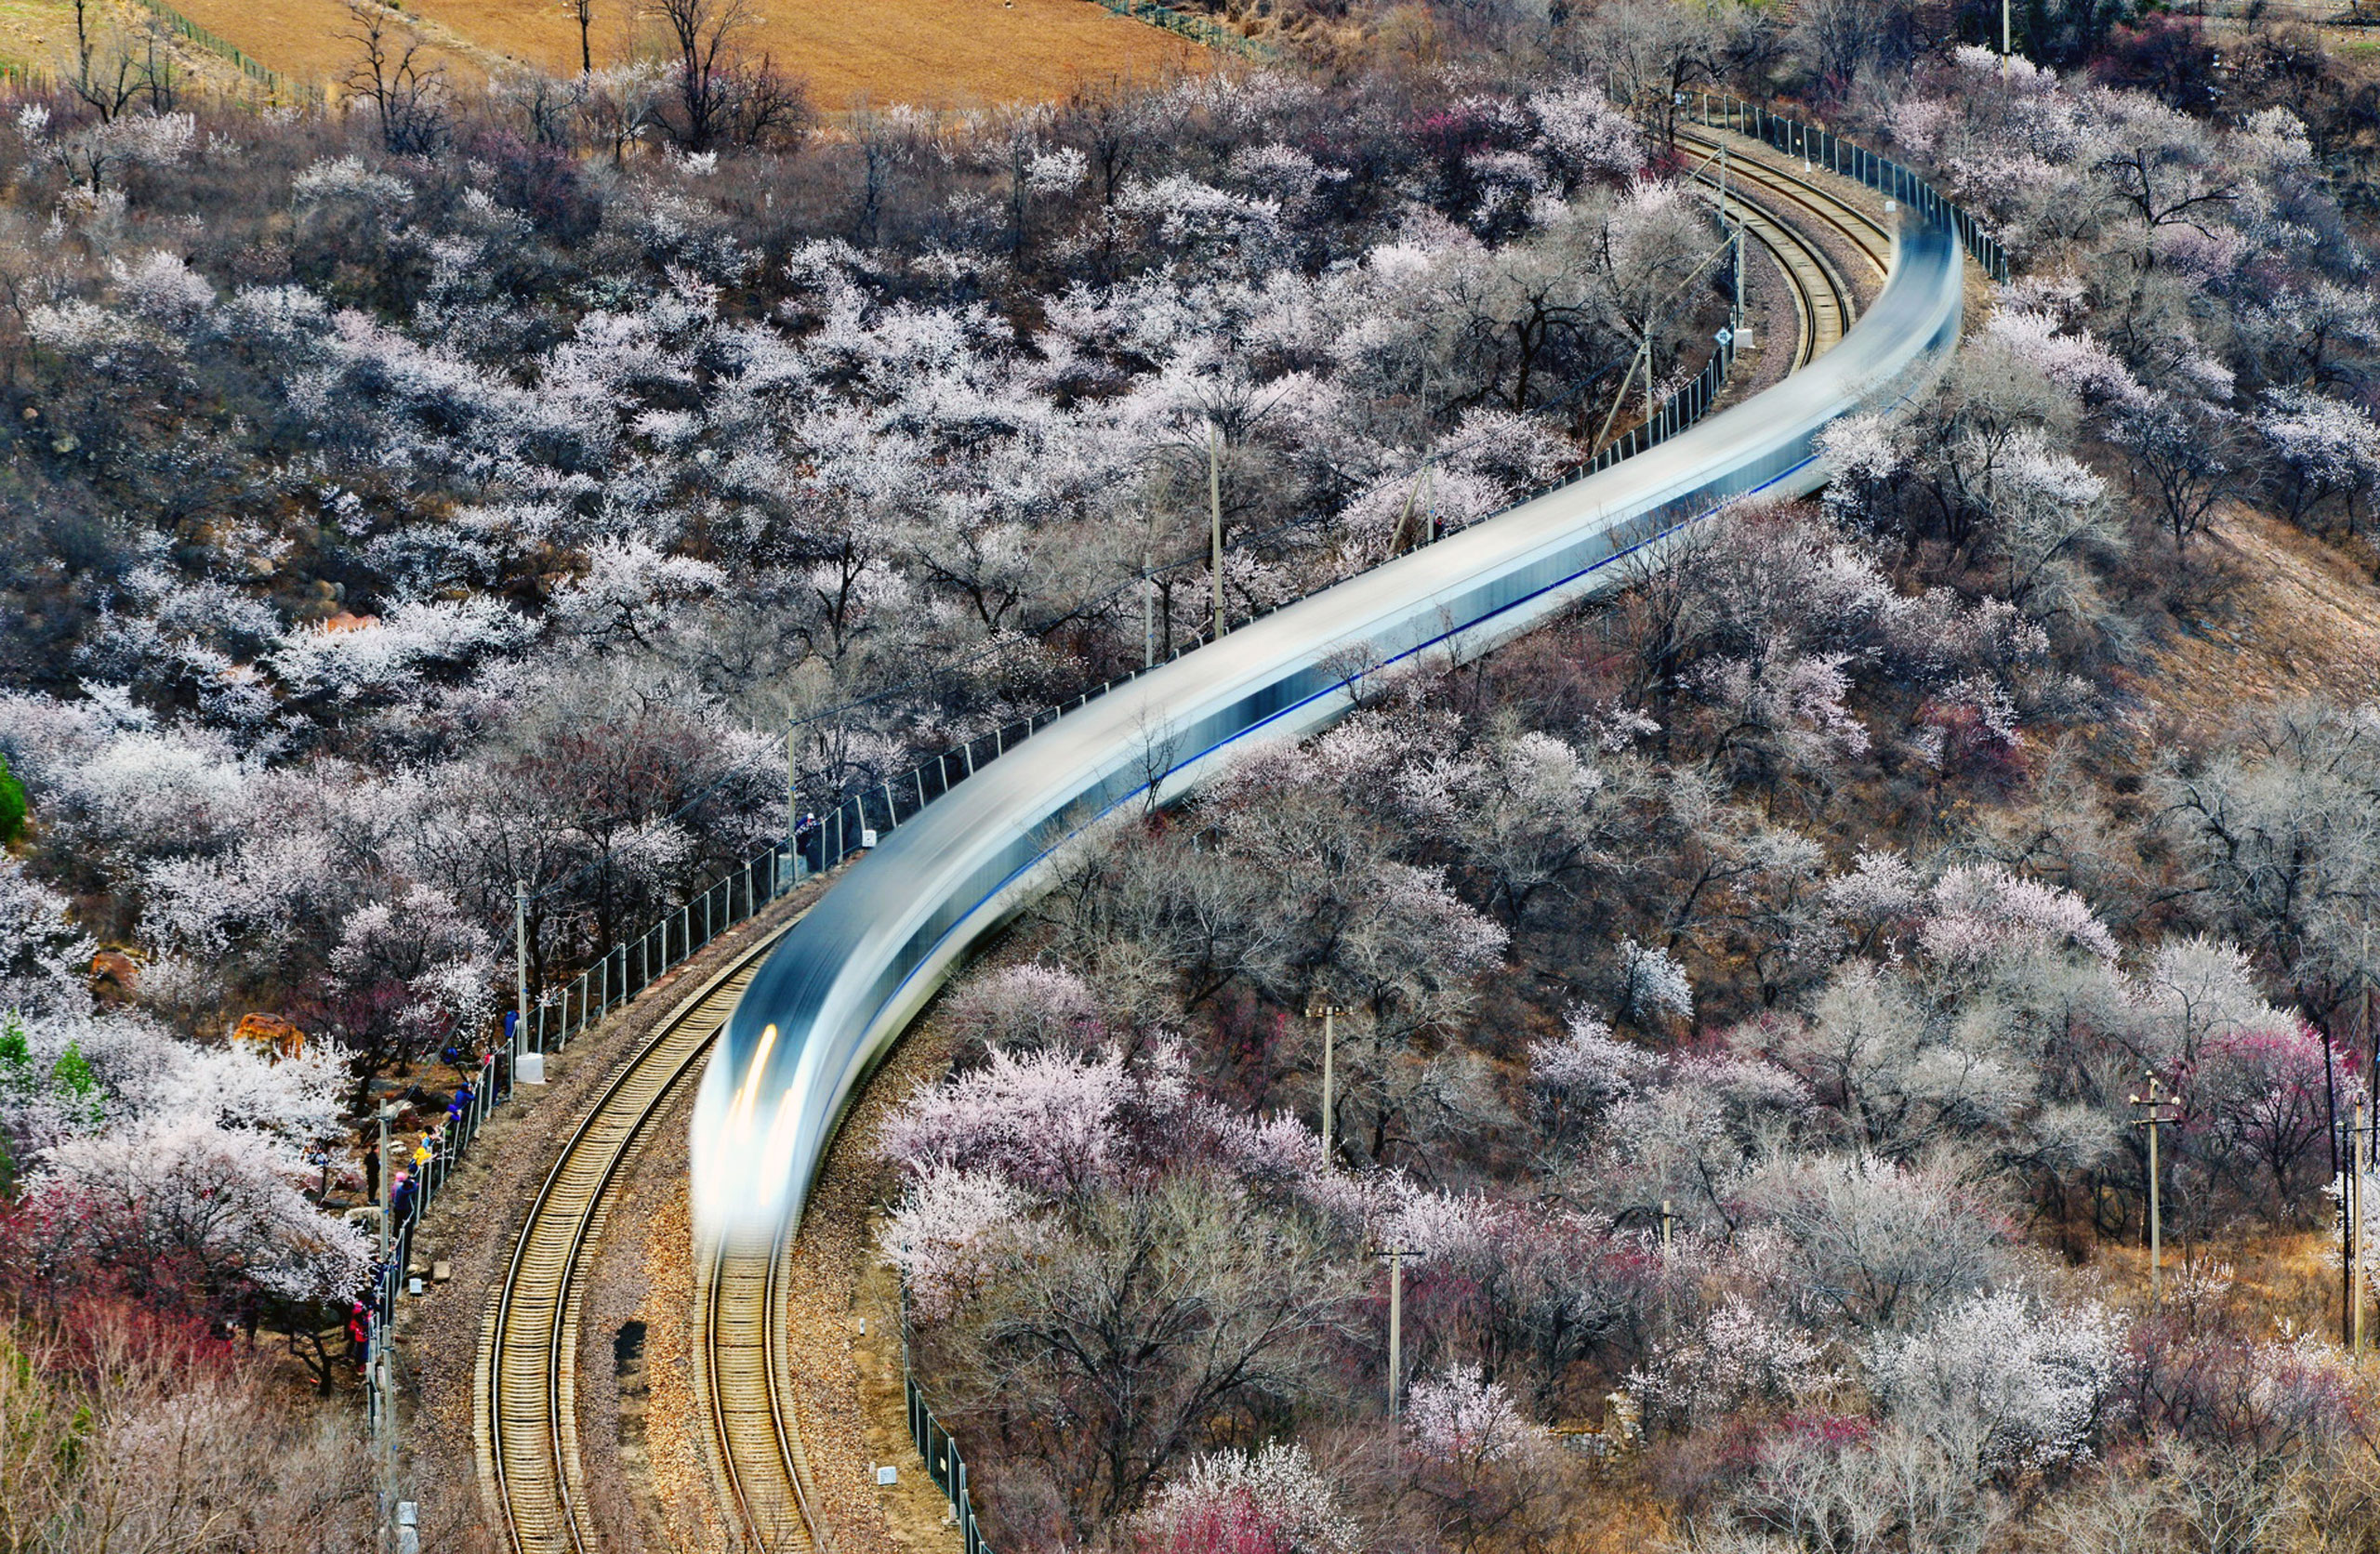 A train runs through a field of peach flowers near the Juyongguan Pass of the Great Wall in Beijing on March 26, 2017.